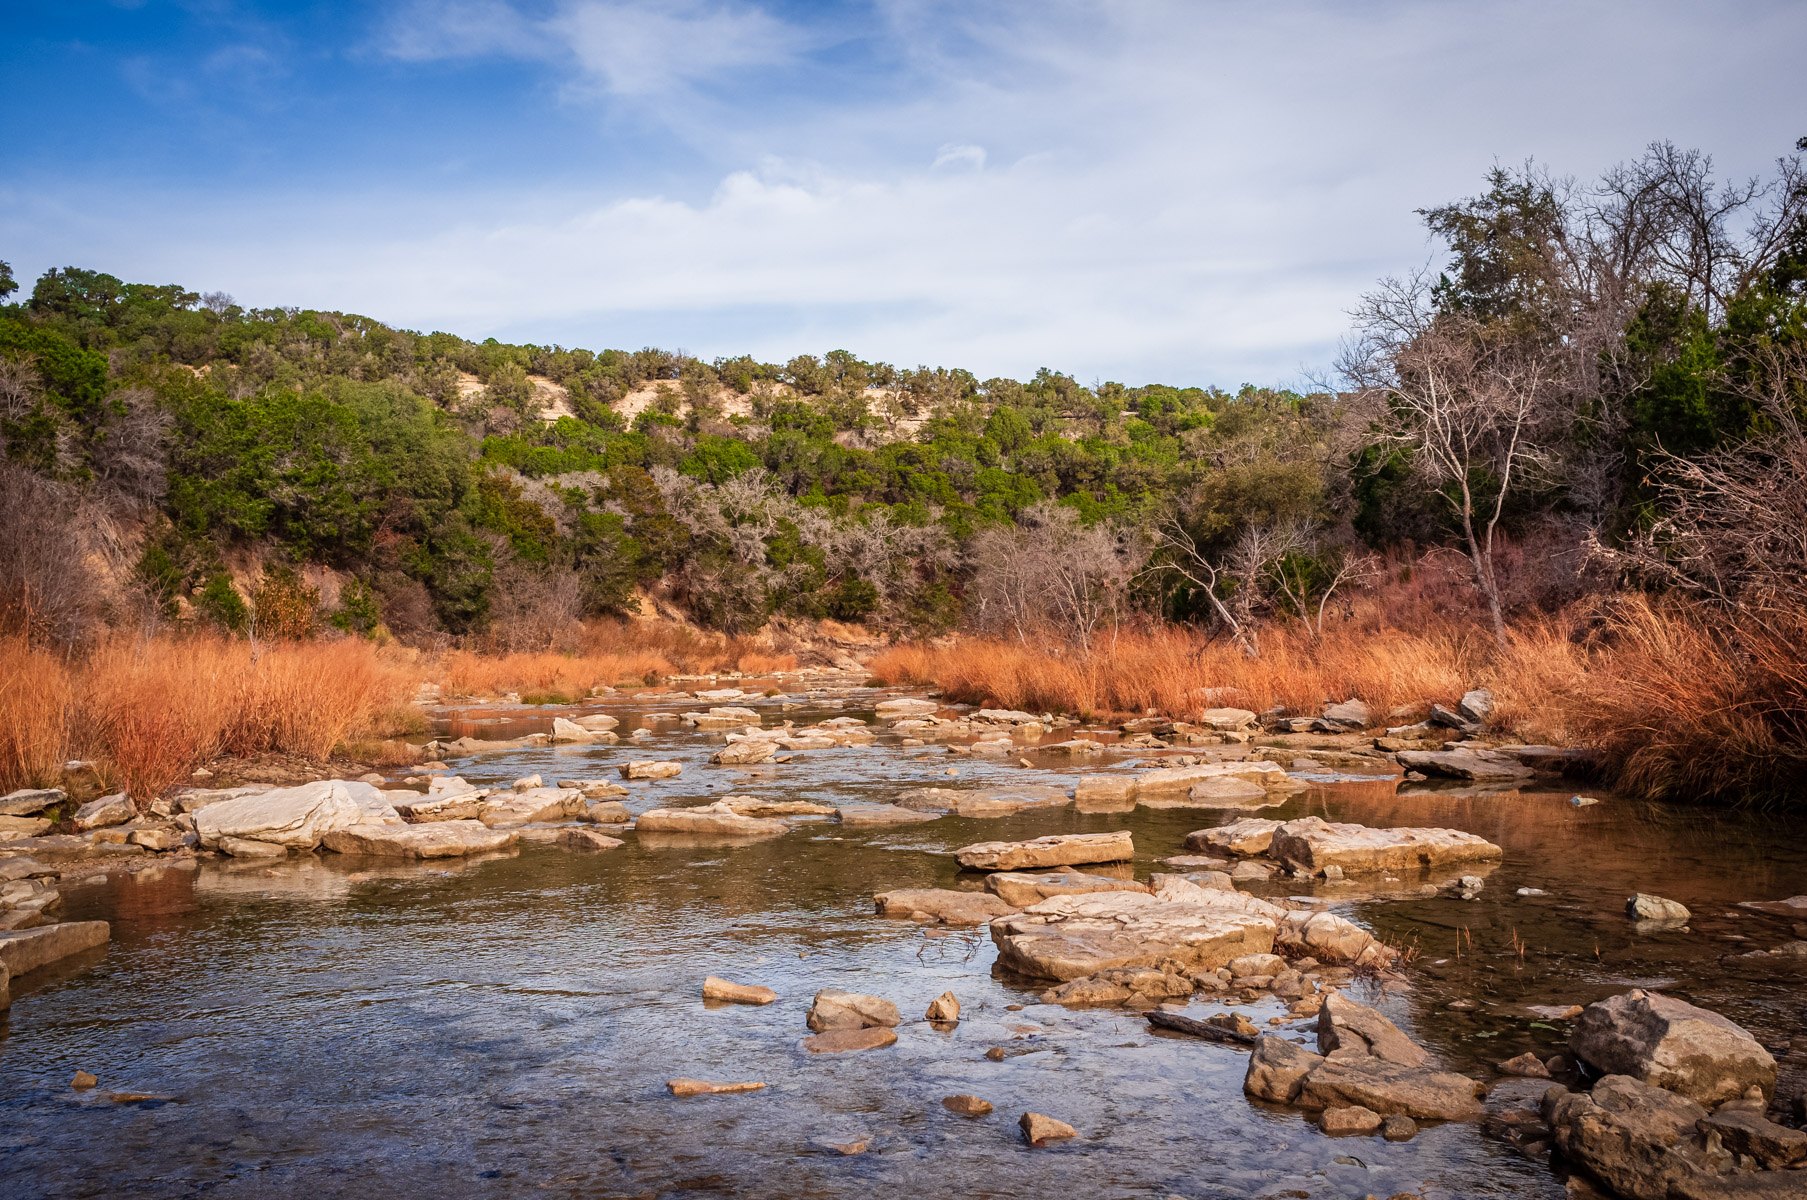 The Paluxy River flows through the highlands near Glen Rose, Texas at Dinosaur Valley State Park.